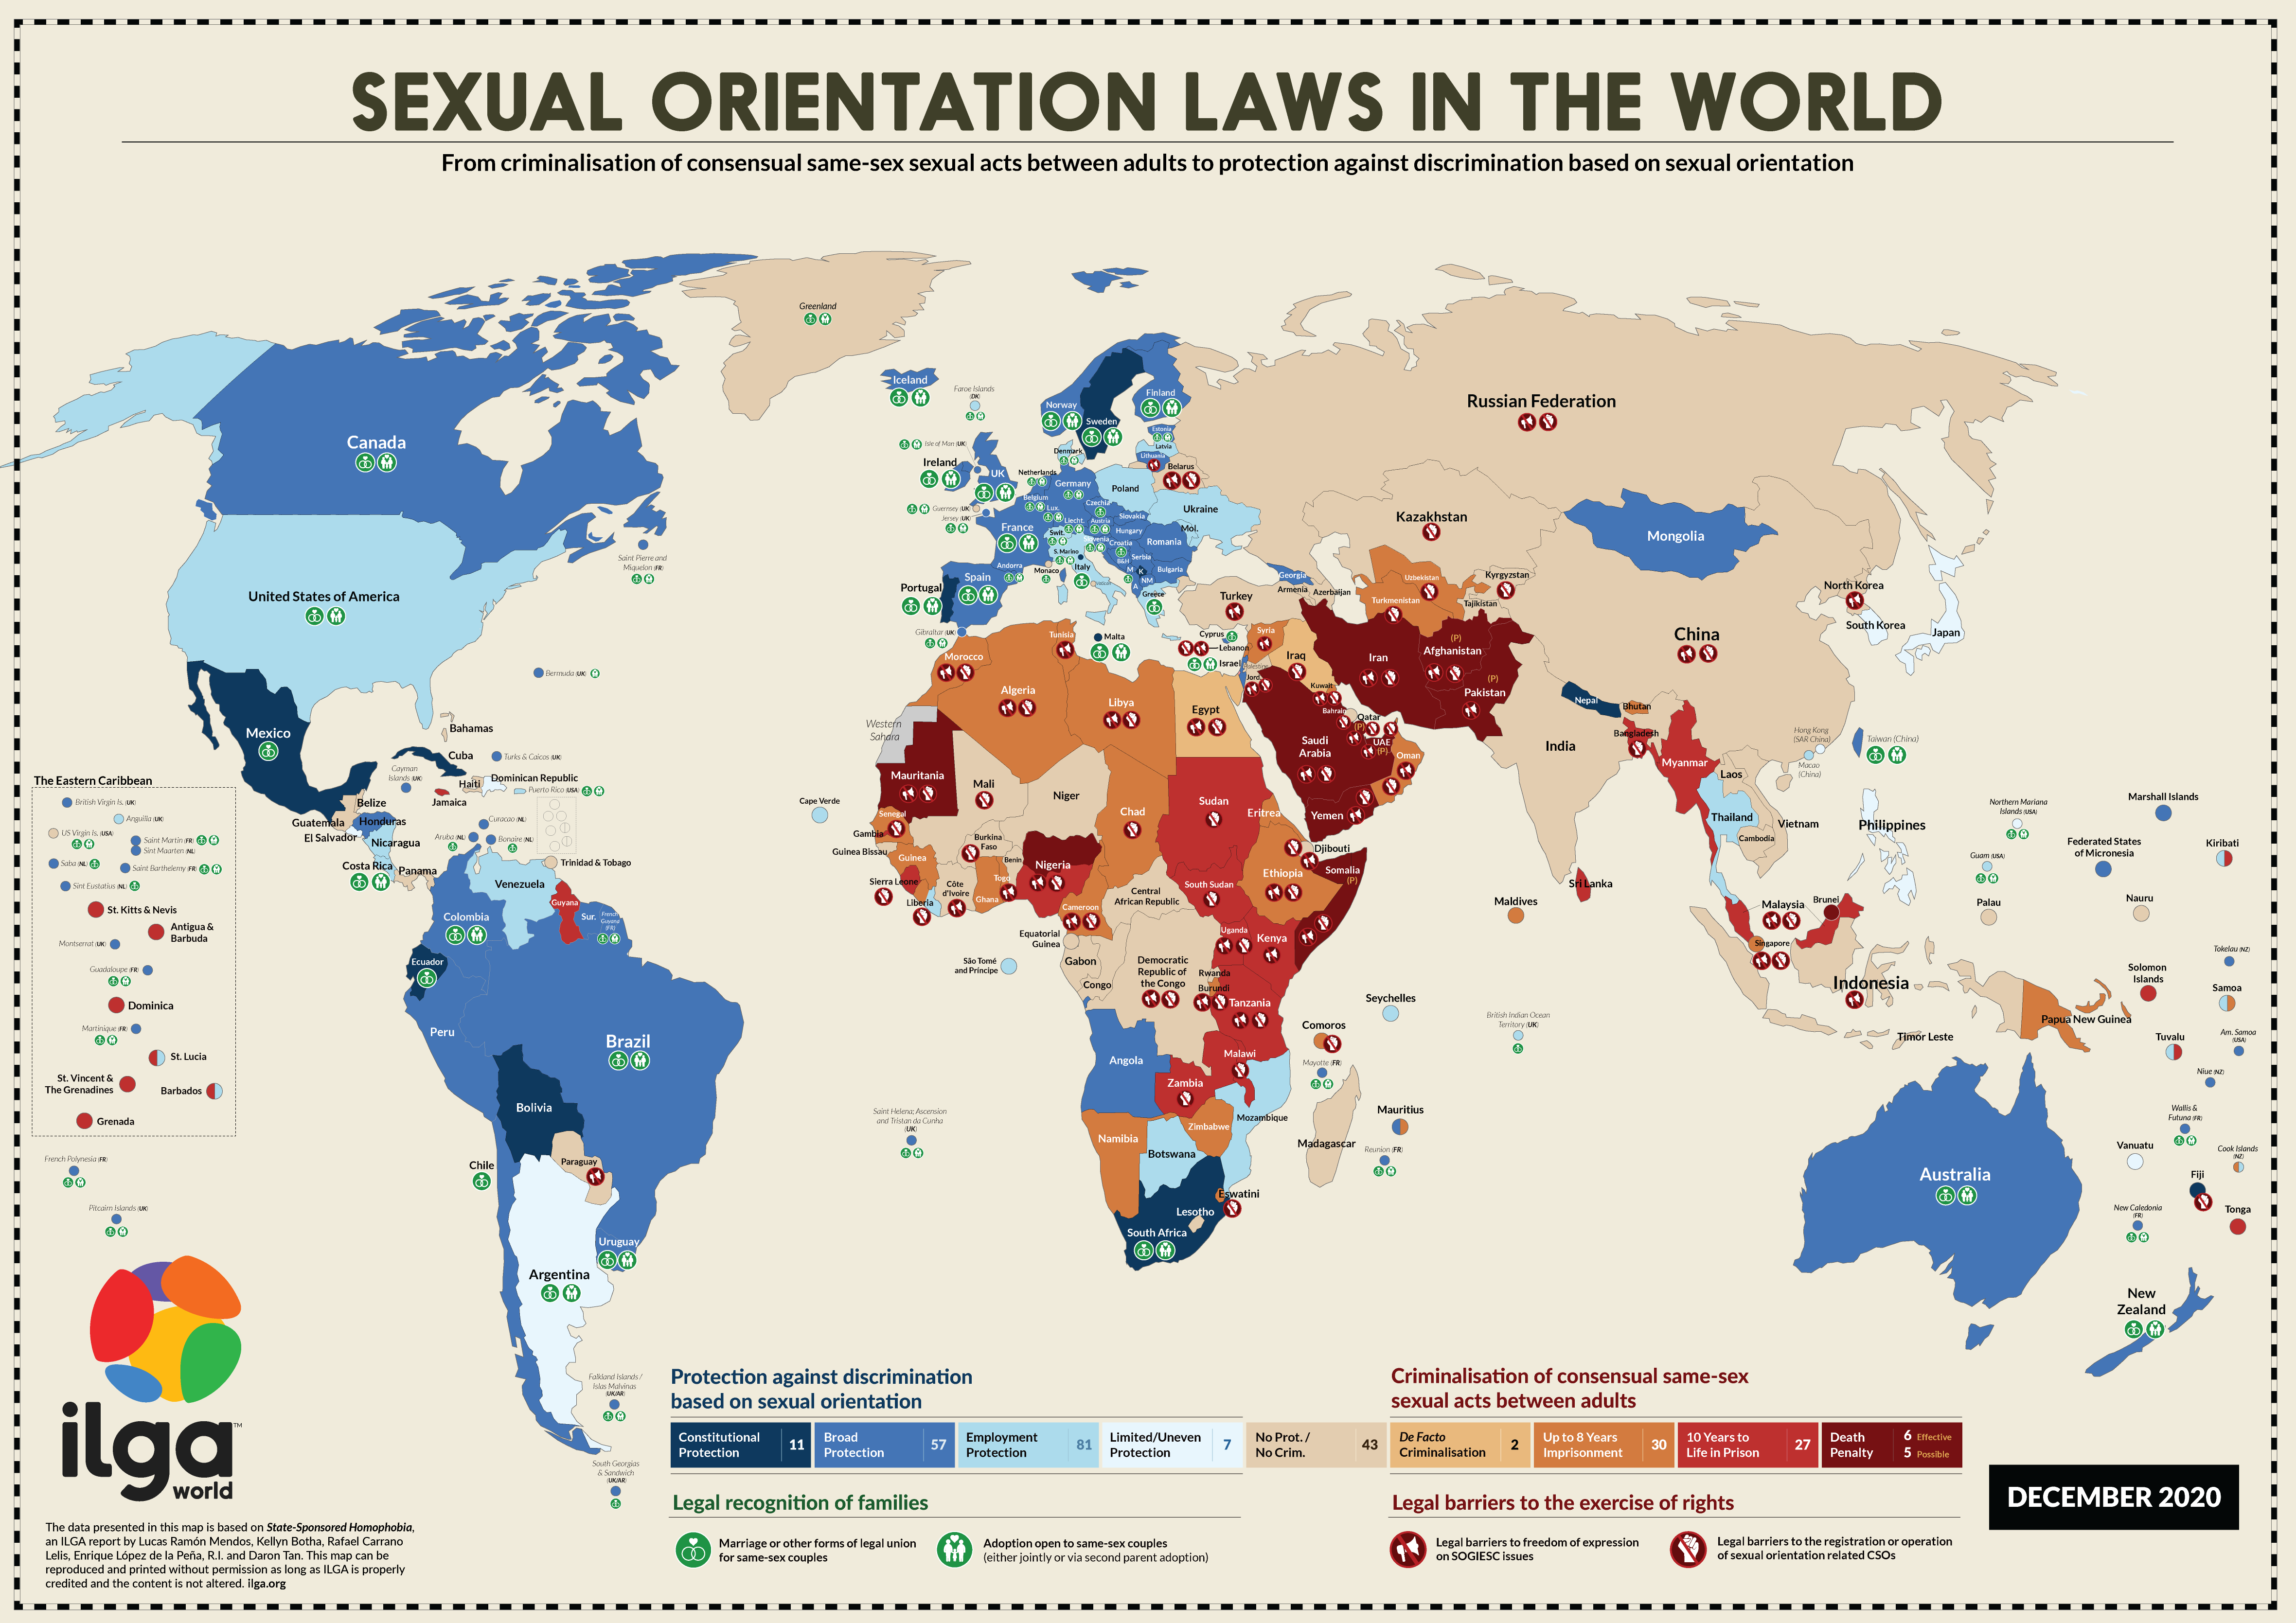 ILGA World sexual orientation laws map